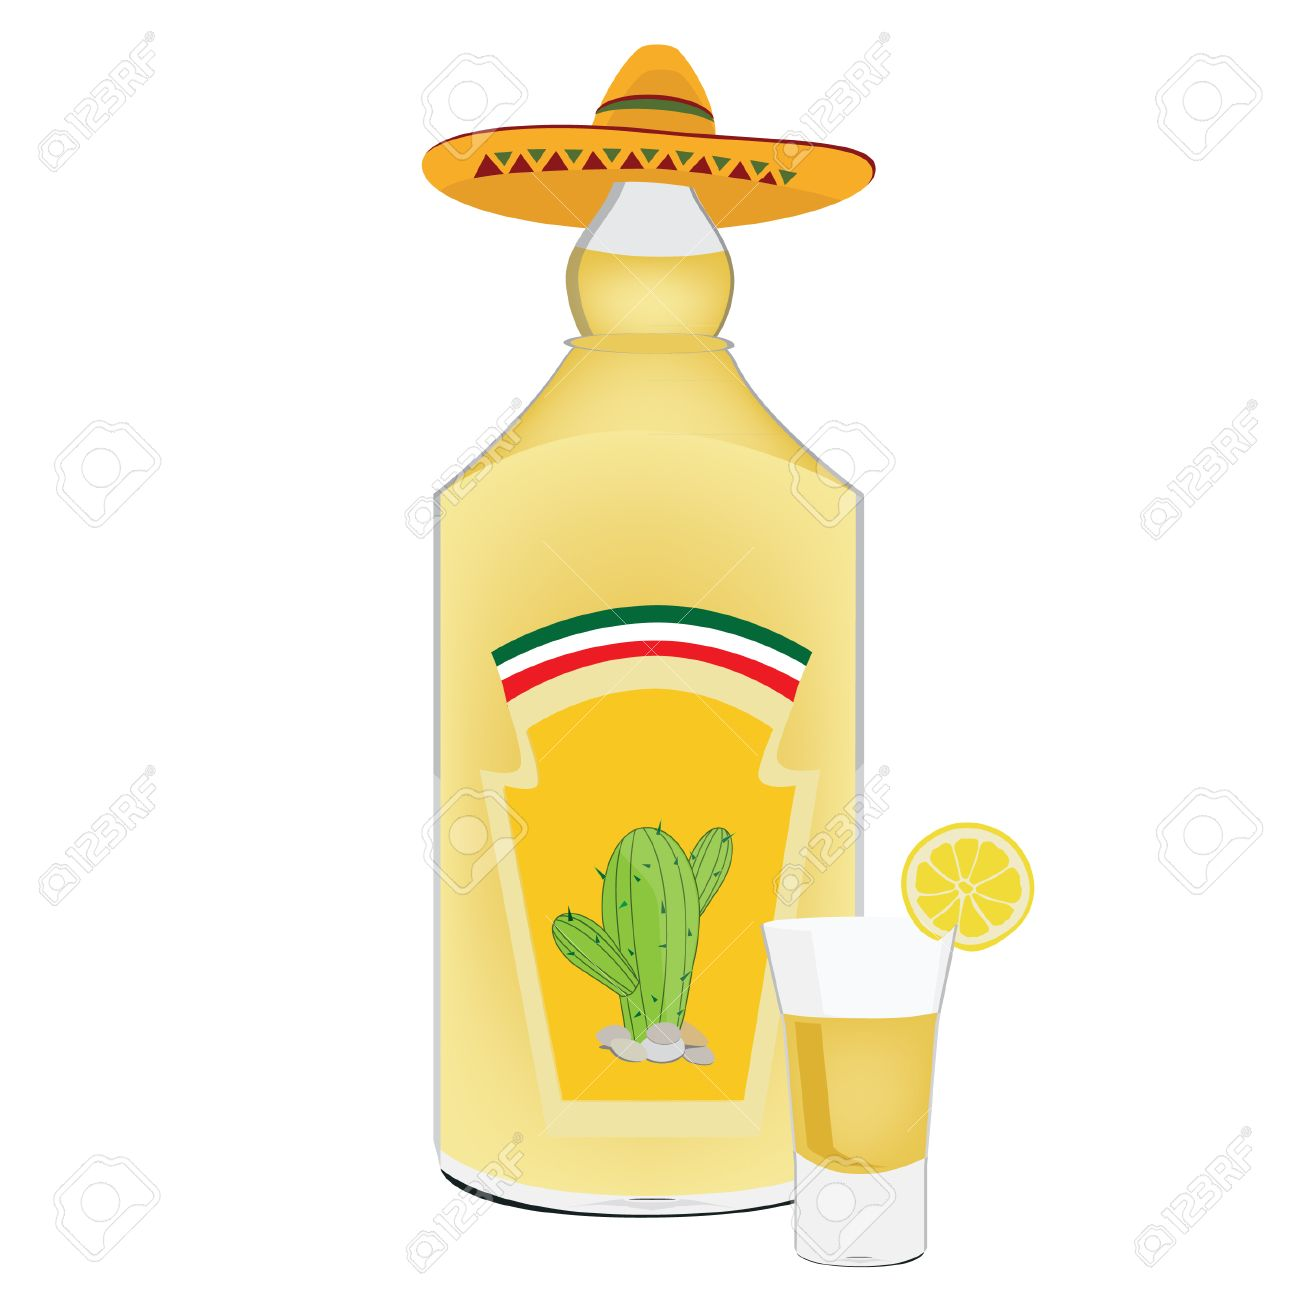 Tequila bottle, tequila shot, shots alcohol, cactus, mexican.